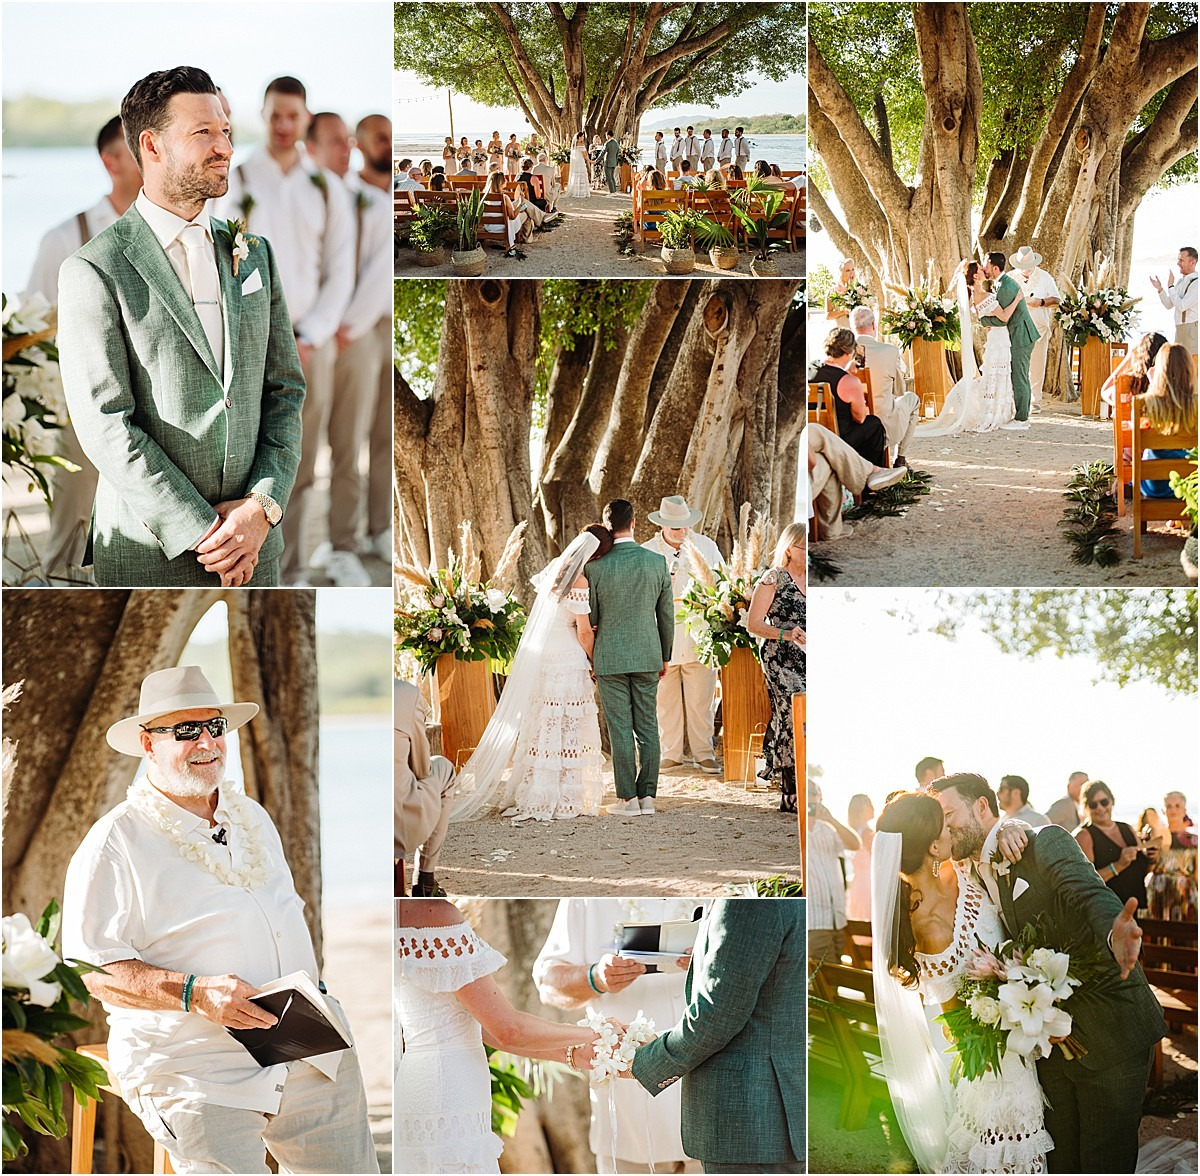 ceremony love green suit